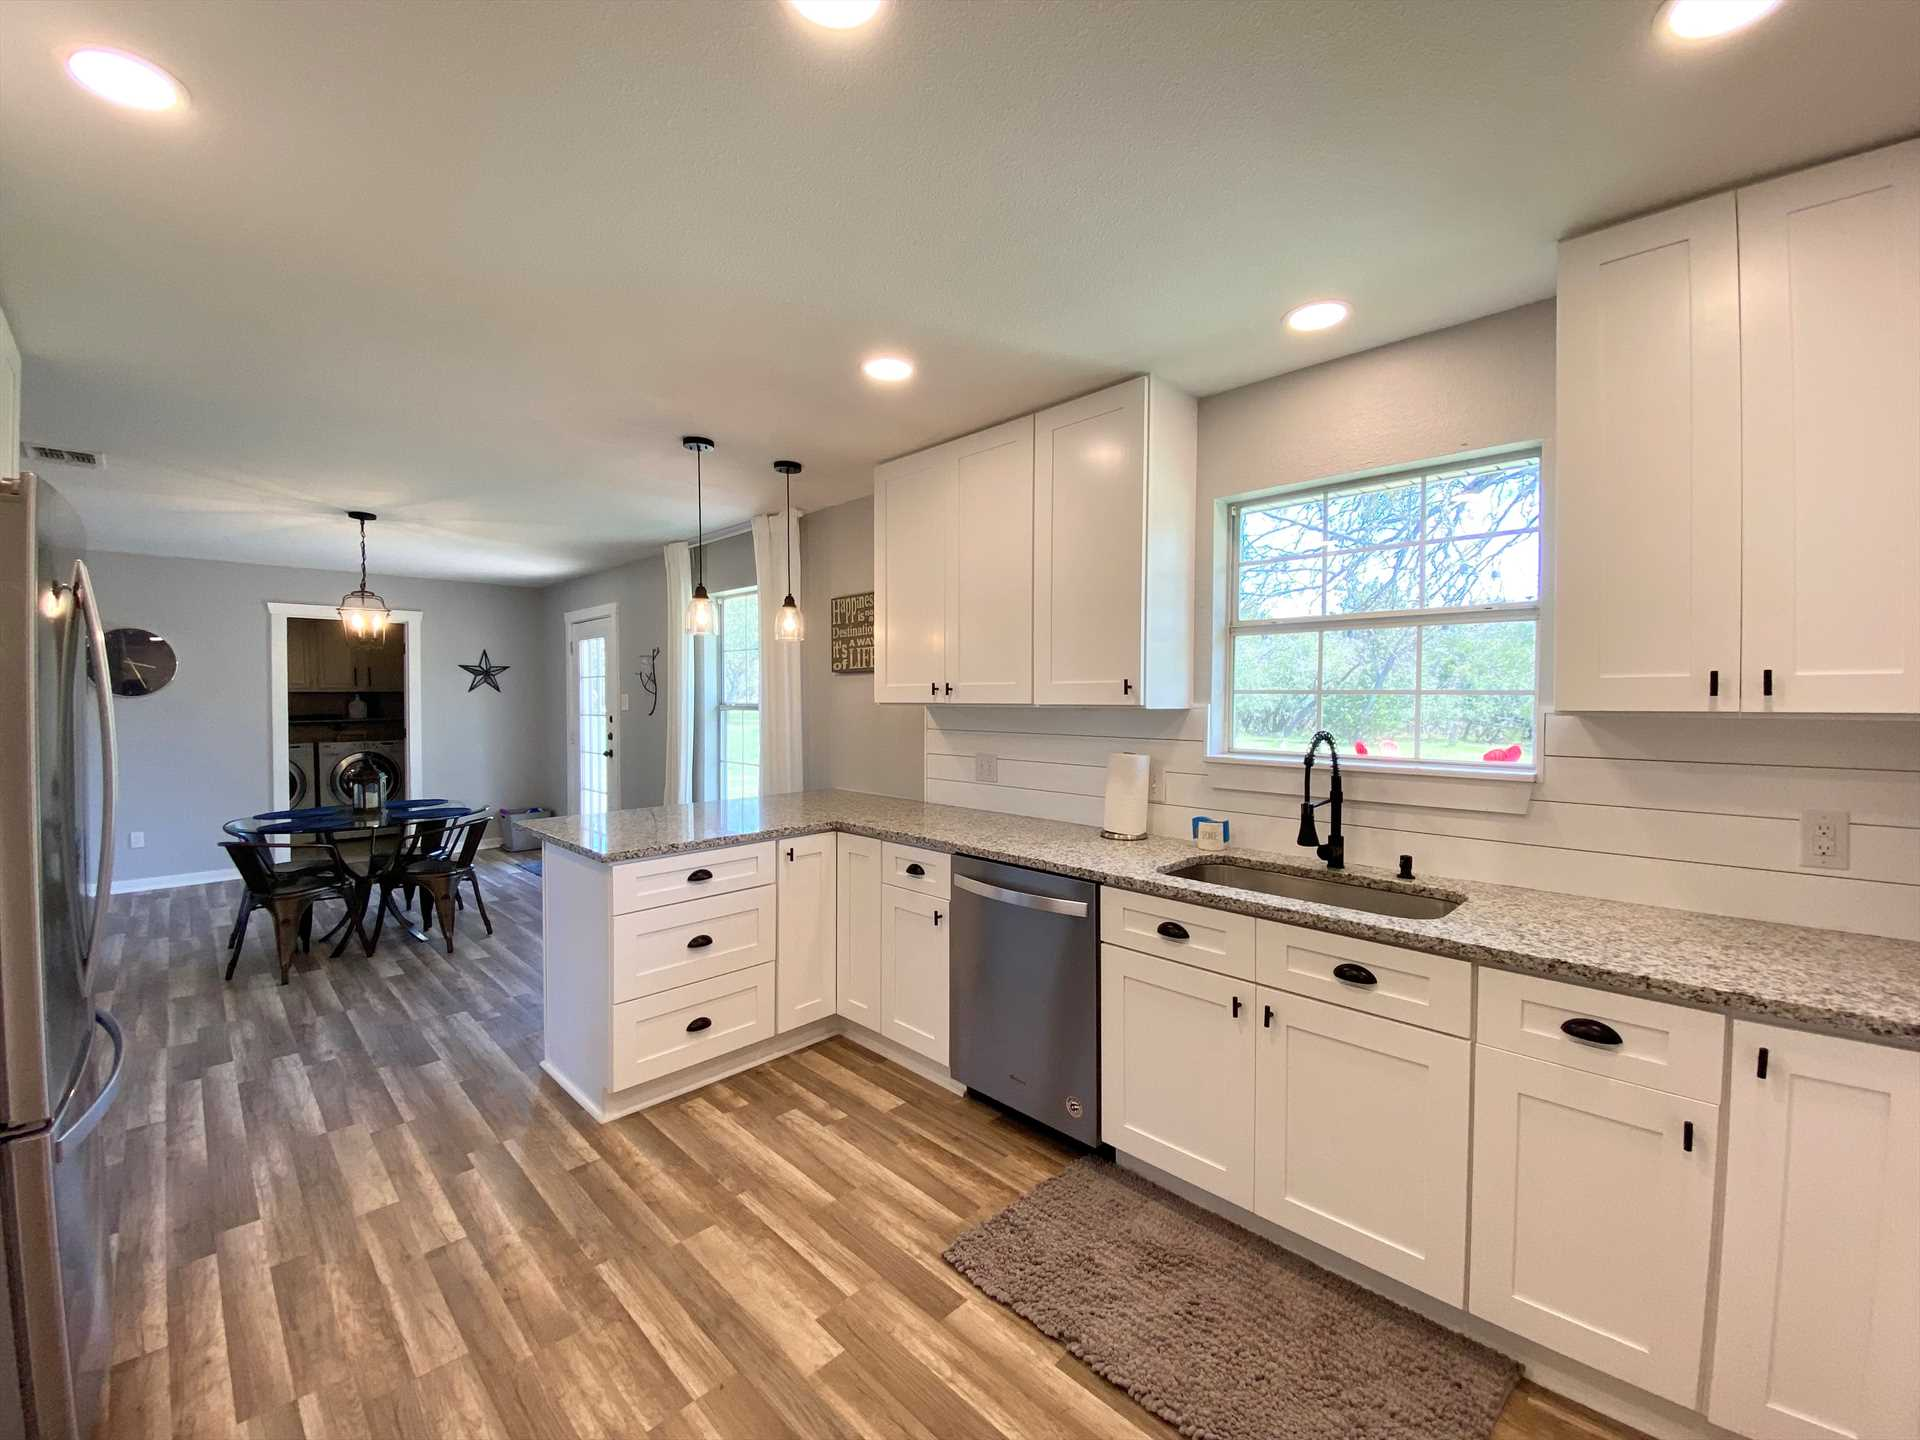 Modern appliances and plenty of counter space on sparkling granite counter tops make the kitchen a joy for cooks to show off their skills!